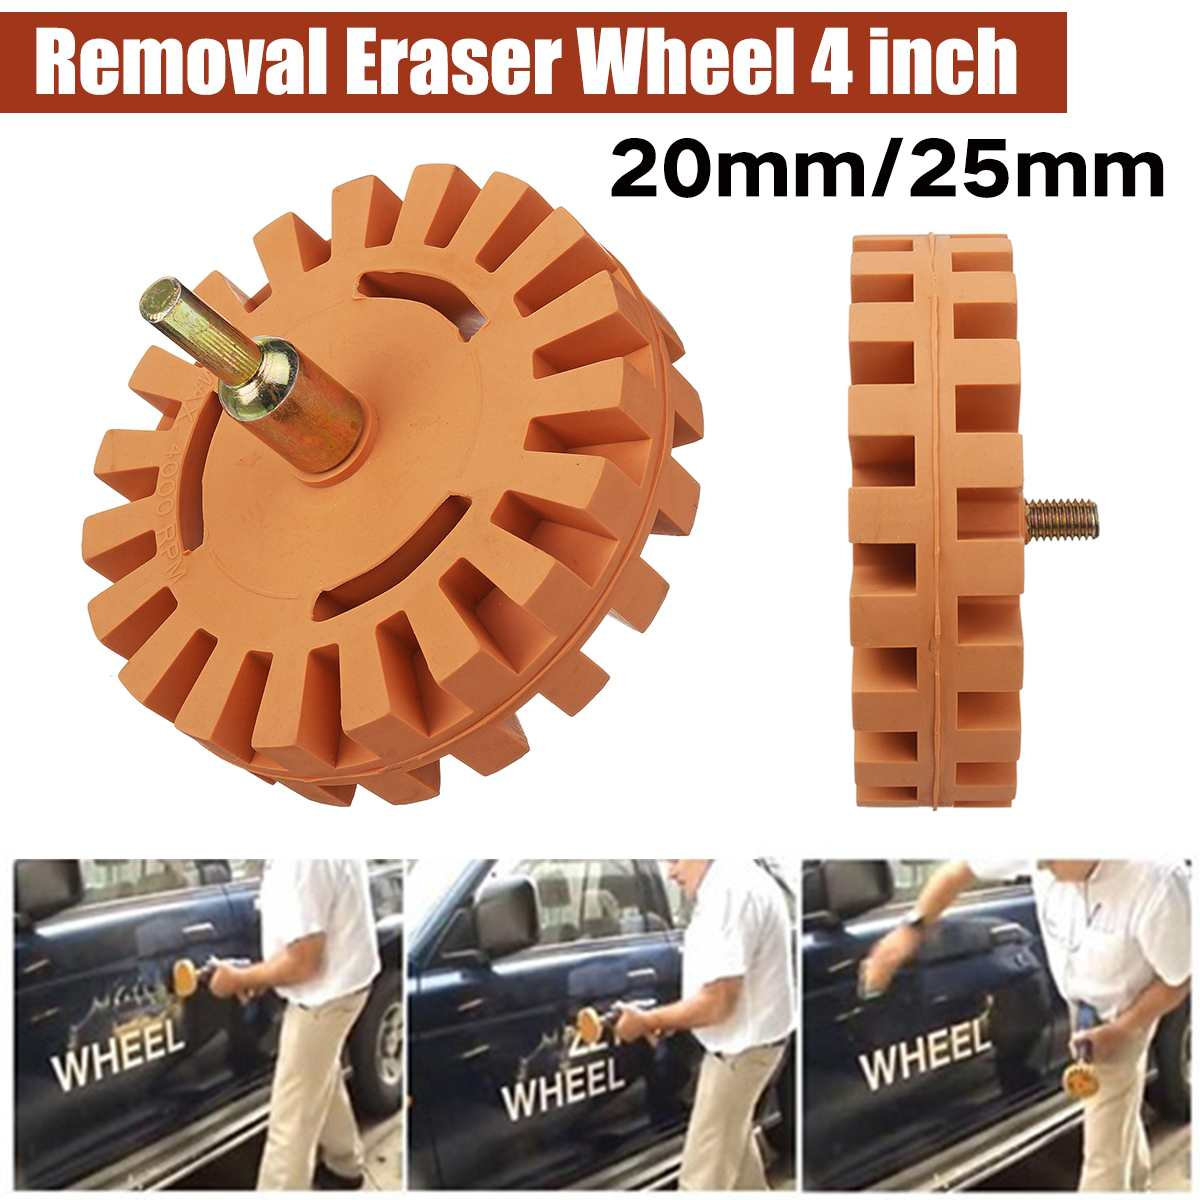 4 inch Rubber Eraser Wheel Pinstripe Decal Graphic Remover Tool w// Drill Adapter